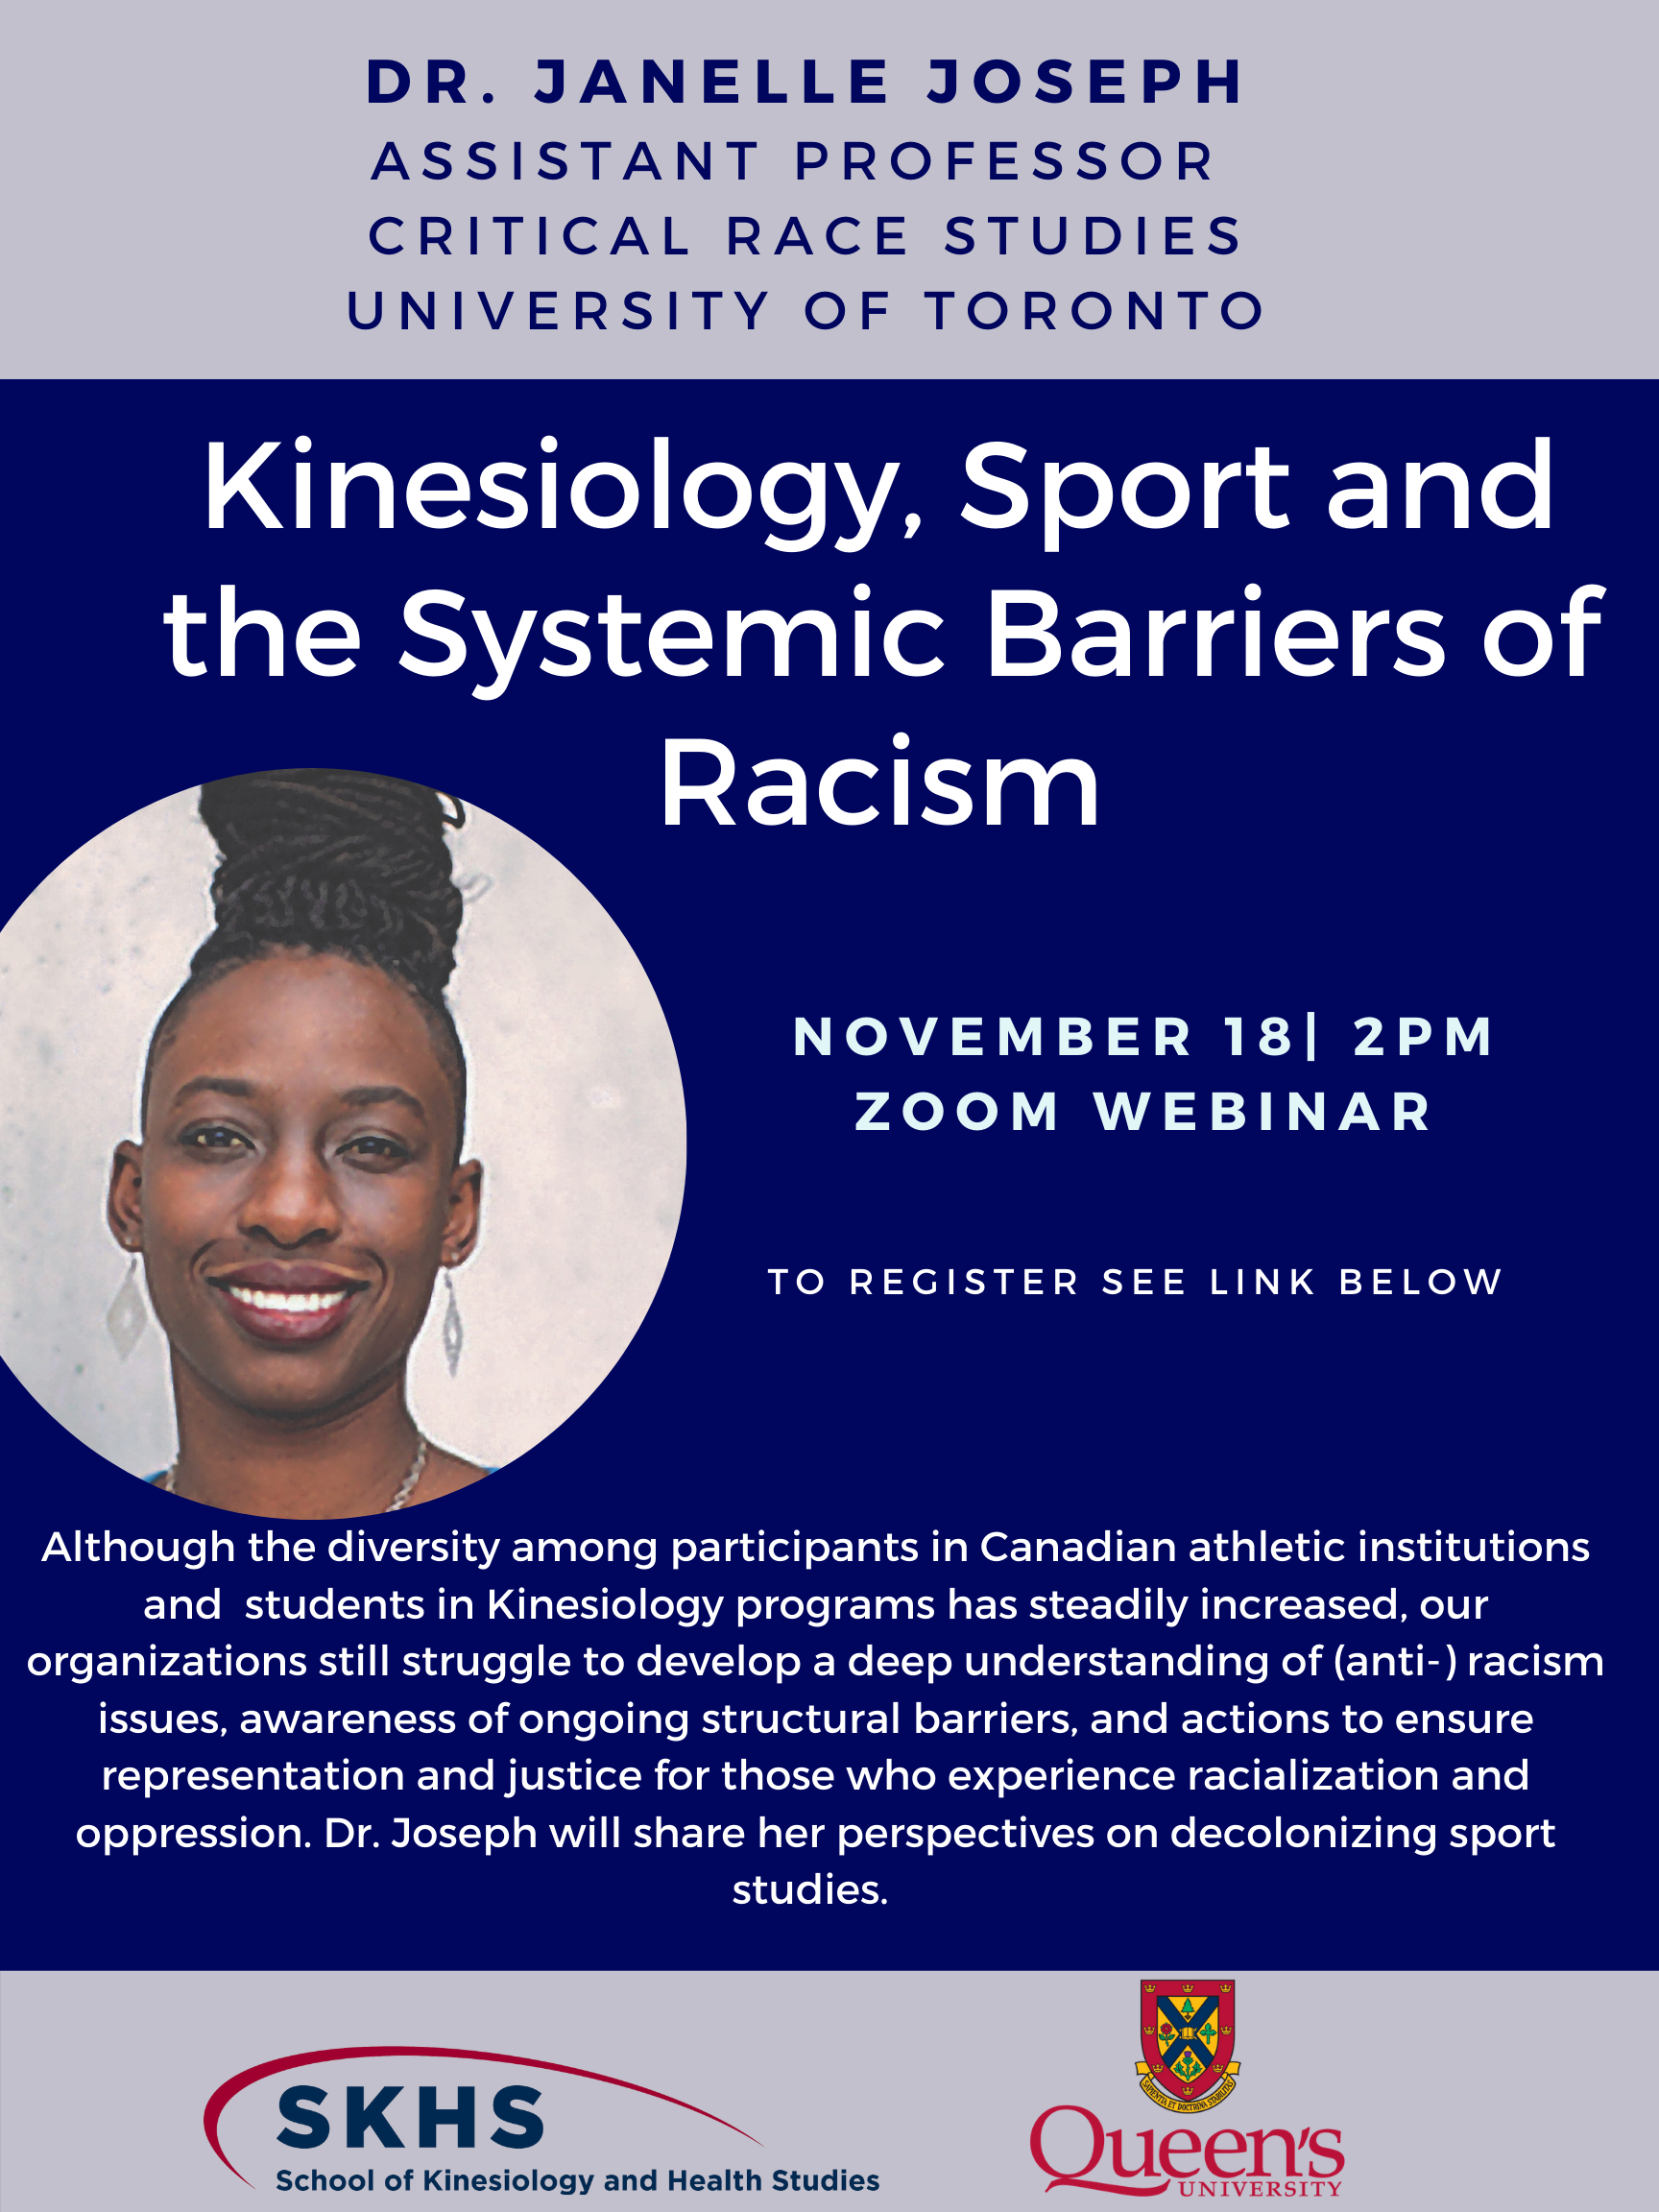 Kinesiology, Sport and the Systemic Barriers of Racism